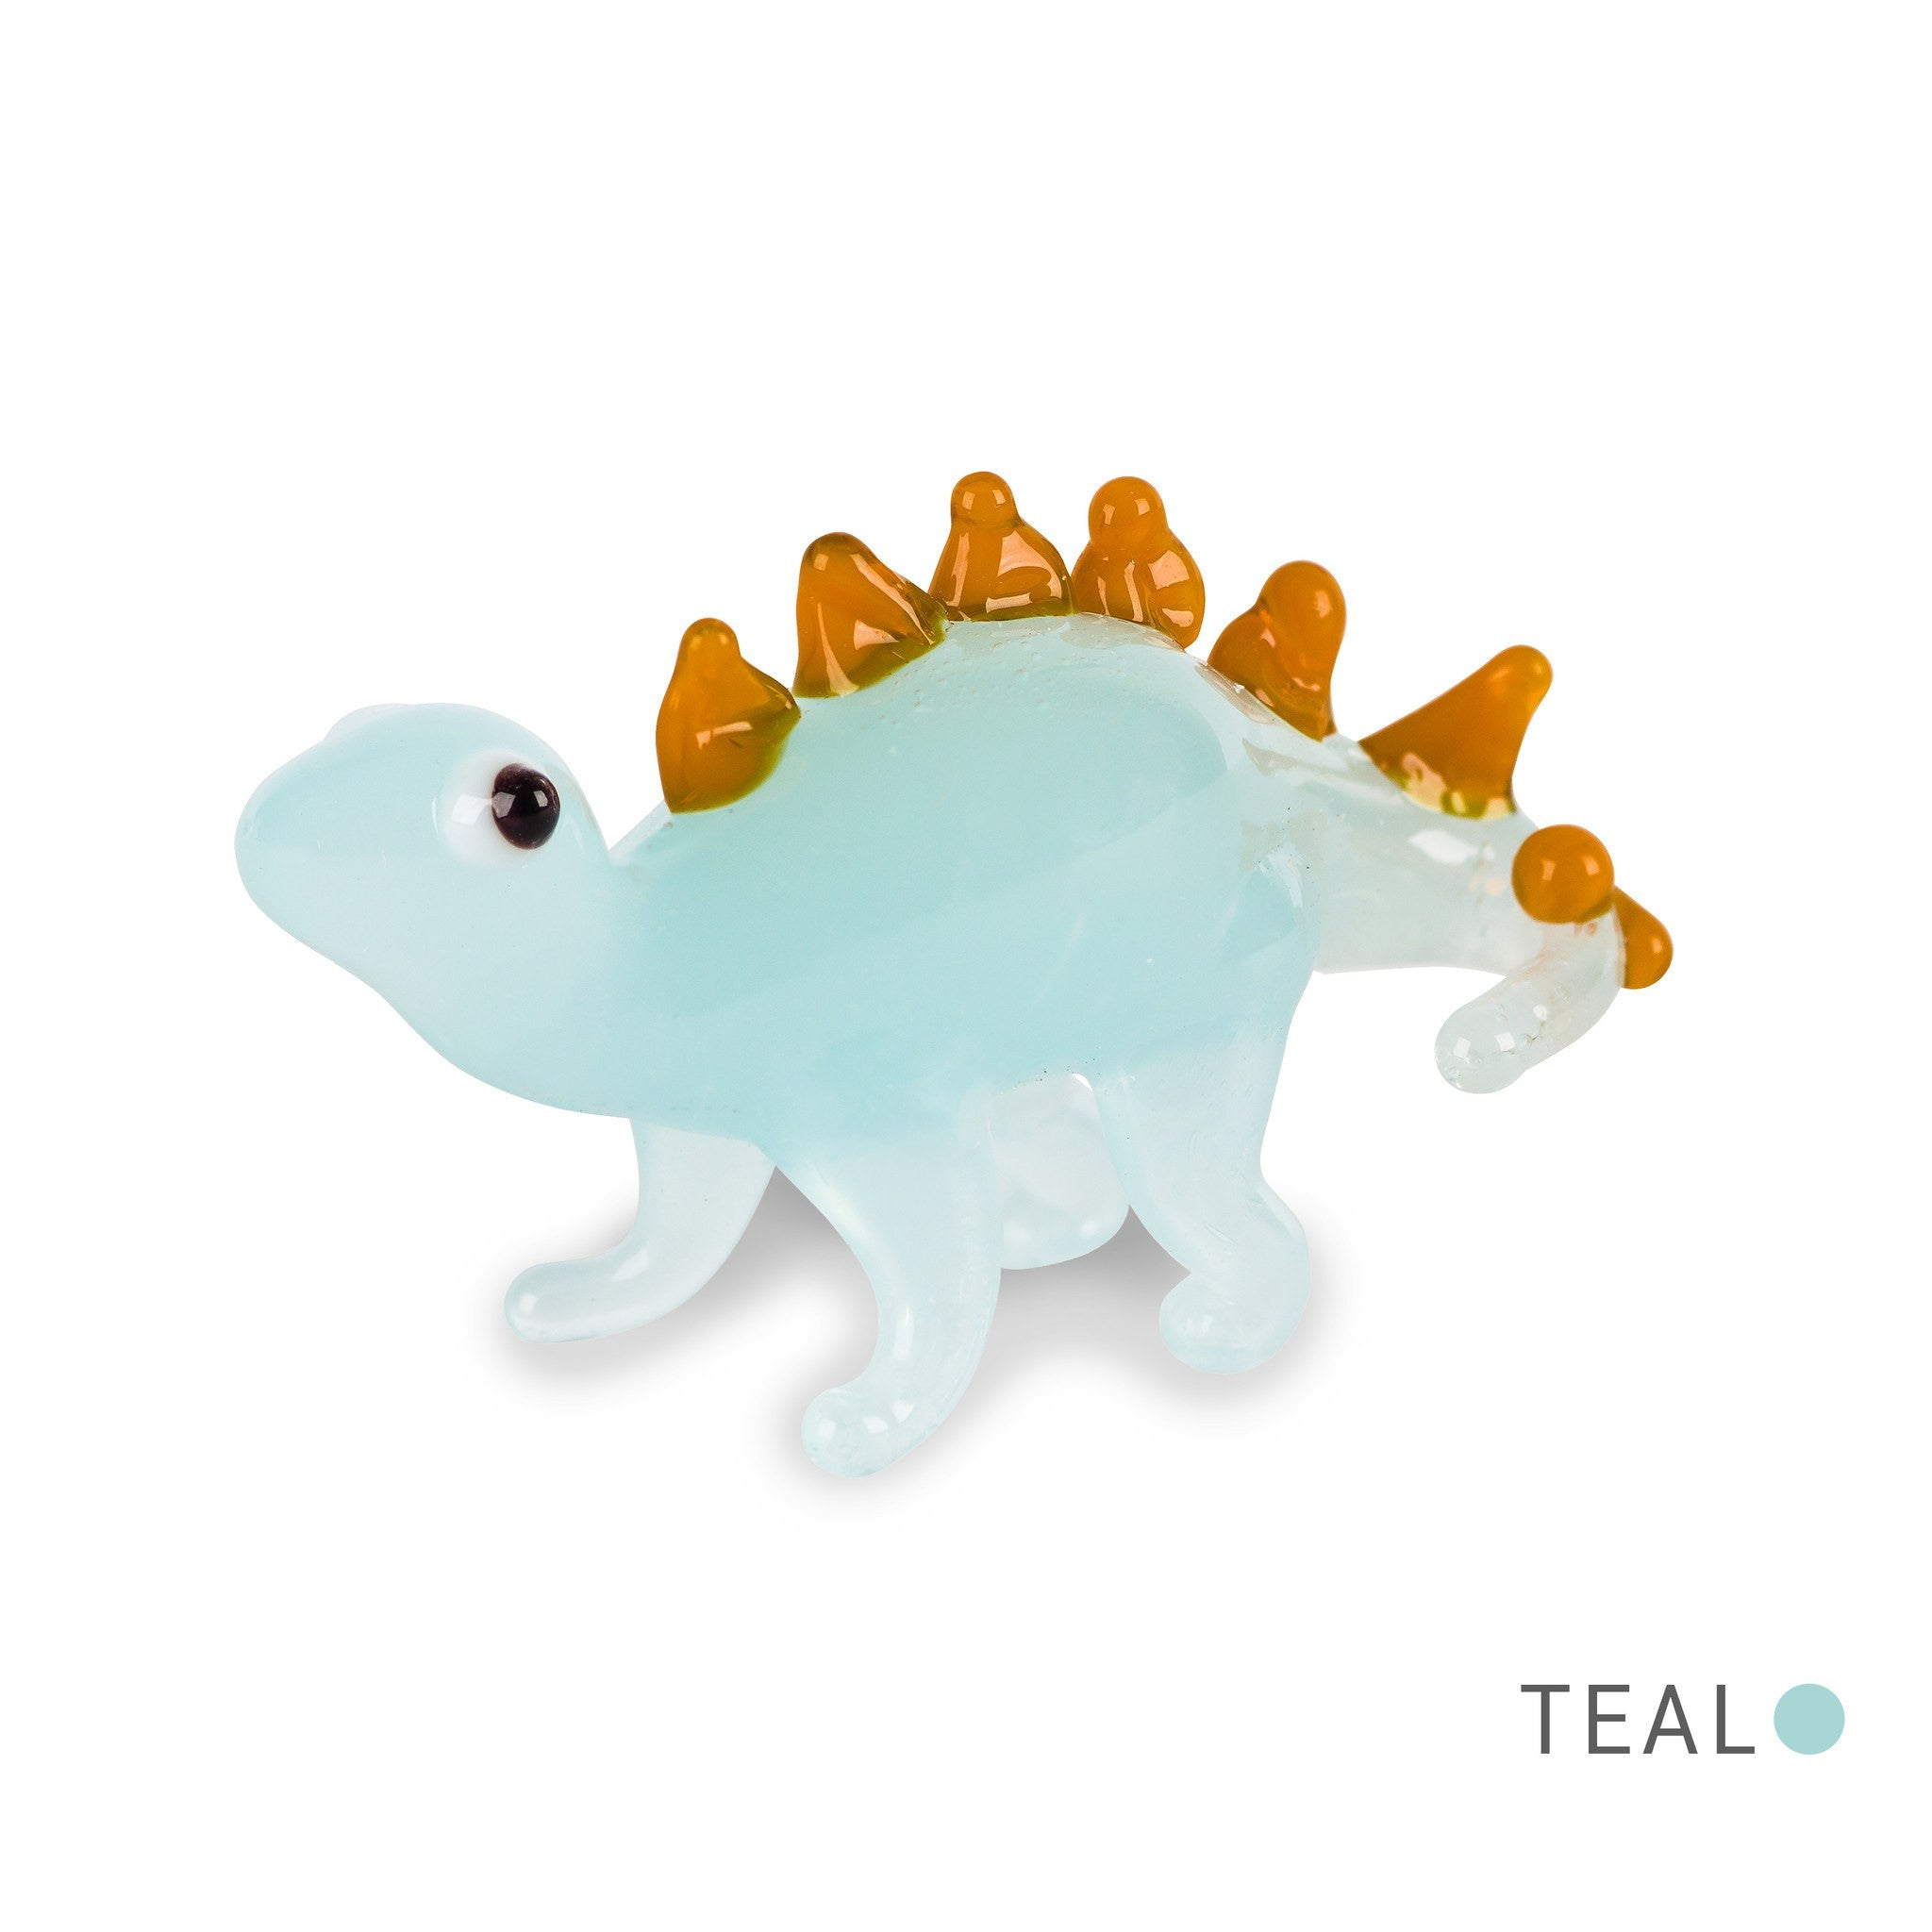 JAKE the stegosaurus dino (in Tynies Collector's Frame) Miniature glass figurines